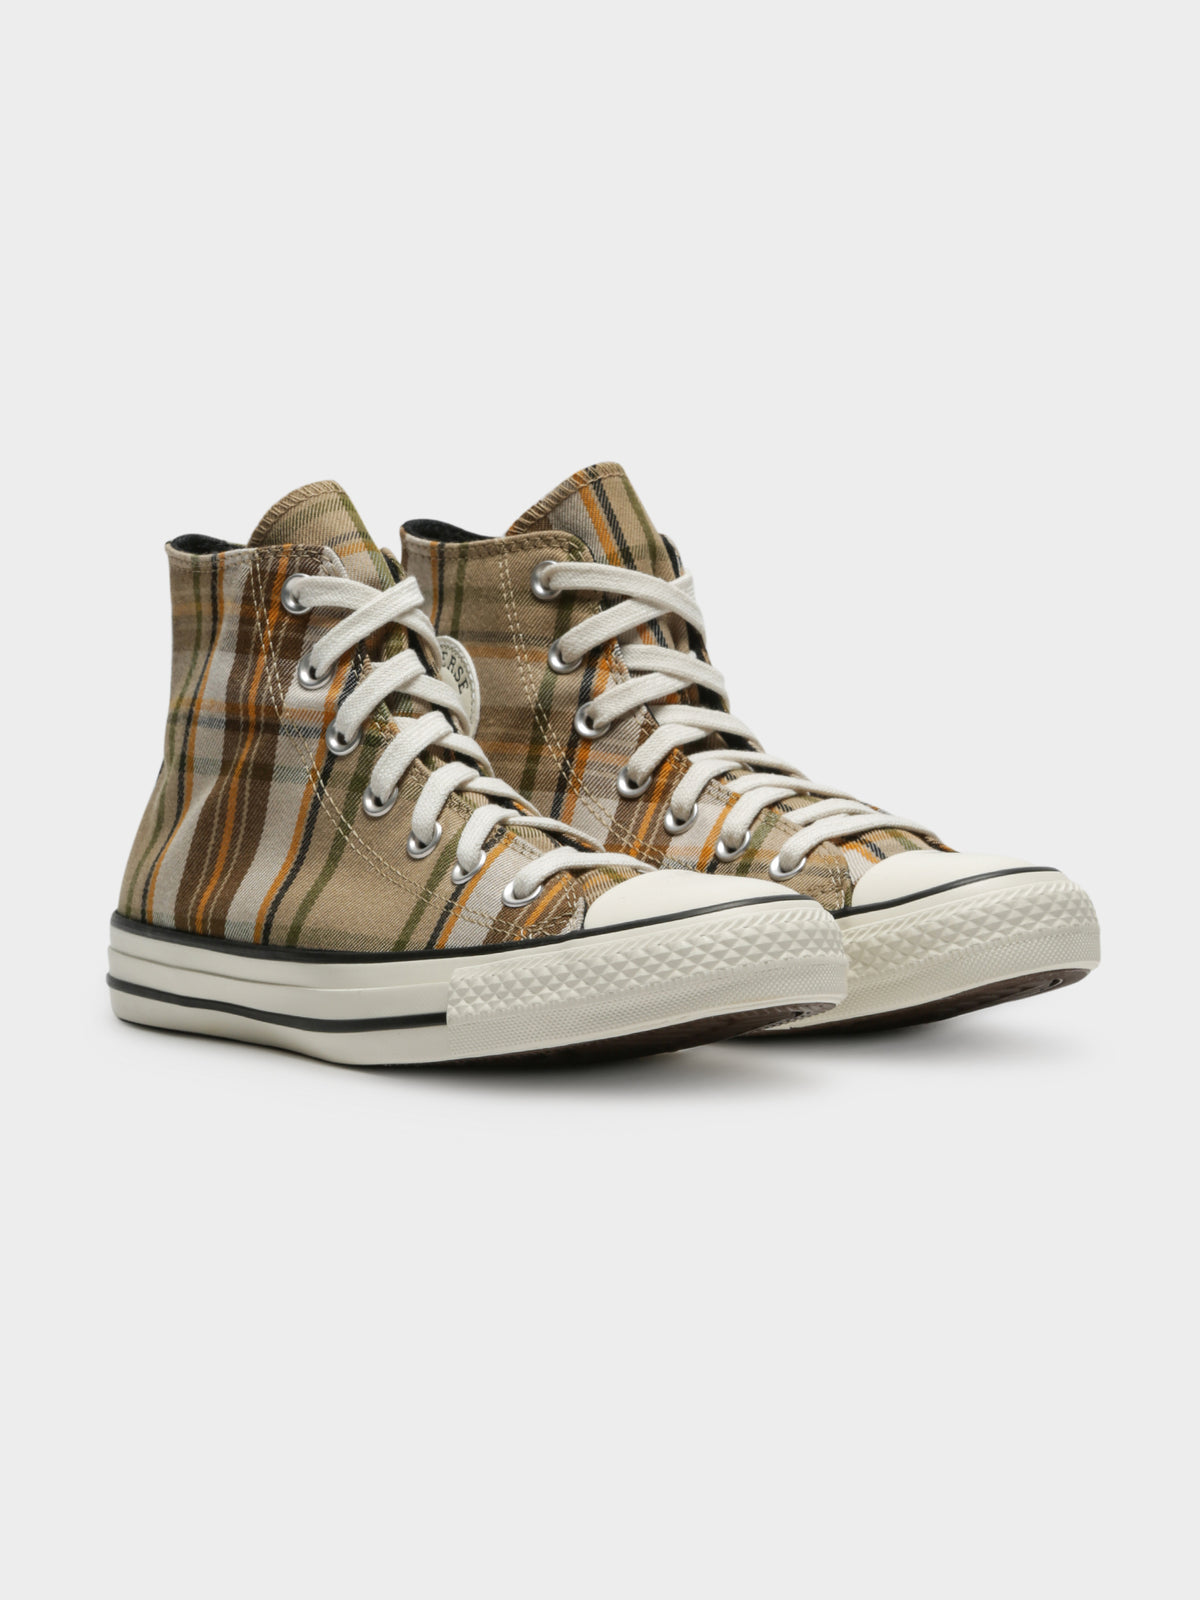 Womens Chuck Taylor All Star Mix & Match High Top Sneakers in Nomad Khaki